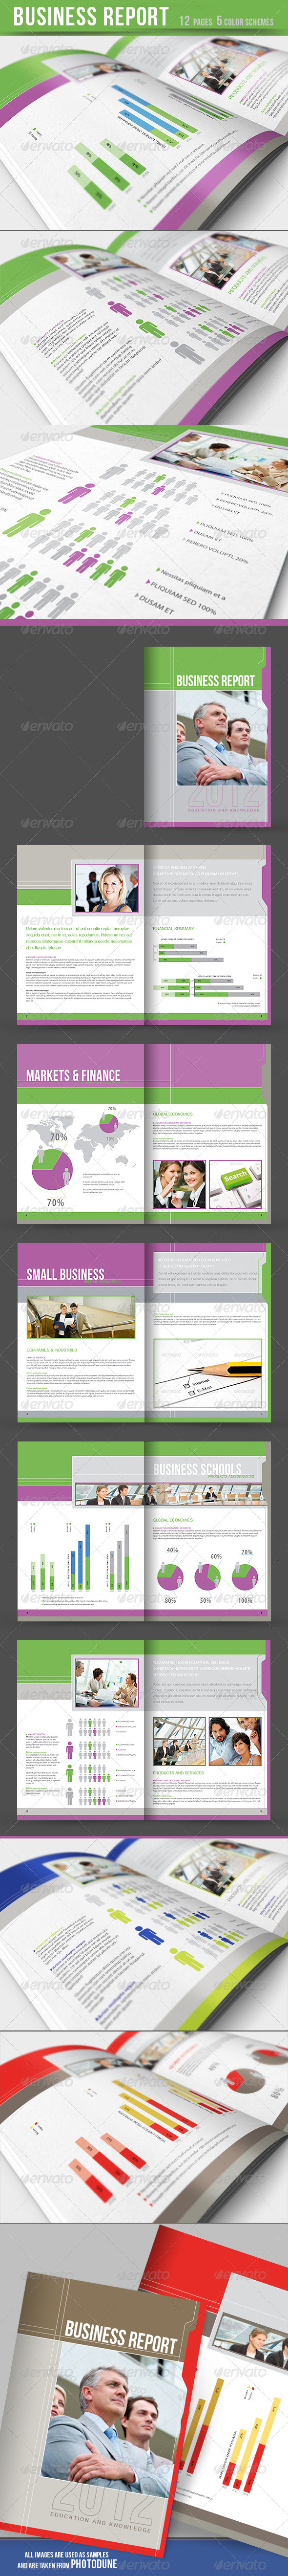 Business Report - Brochure - 5 color schemes - Corporate Brochures